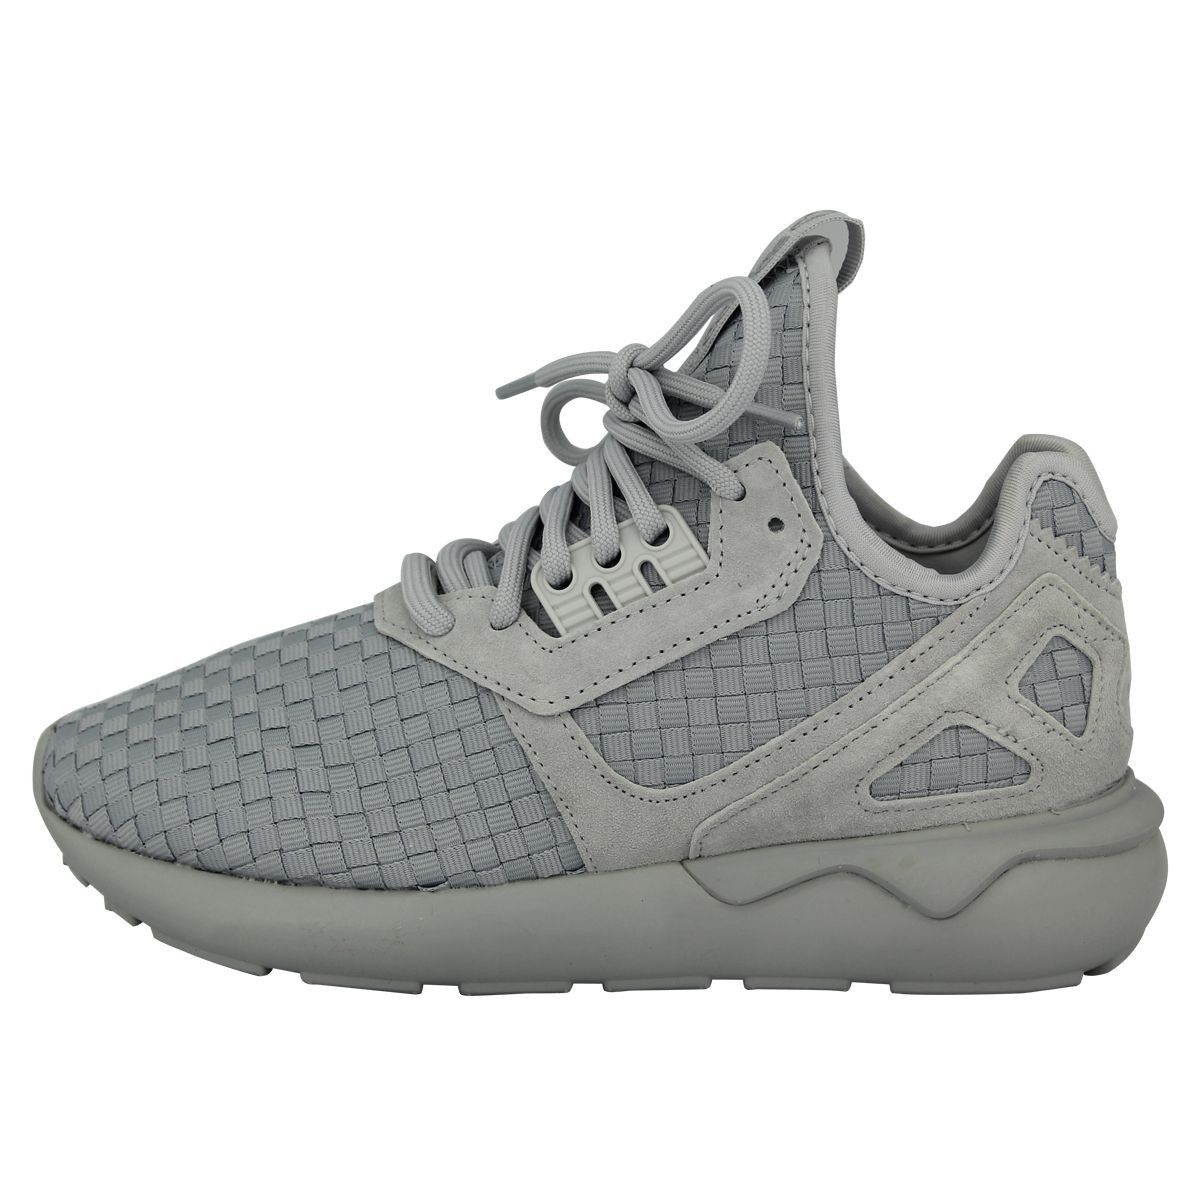 TUBULAR RUNNER Chaussures Mode Sneakers Unisex Gris